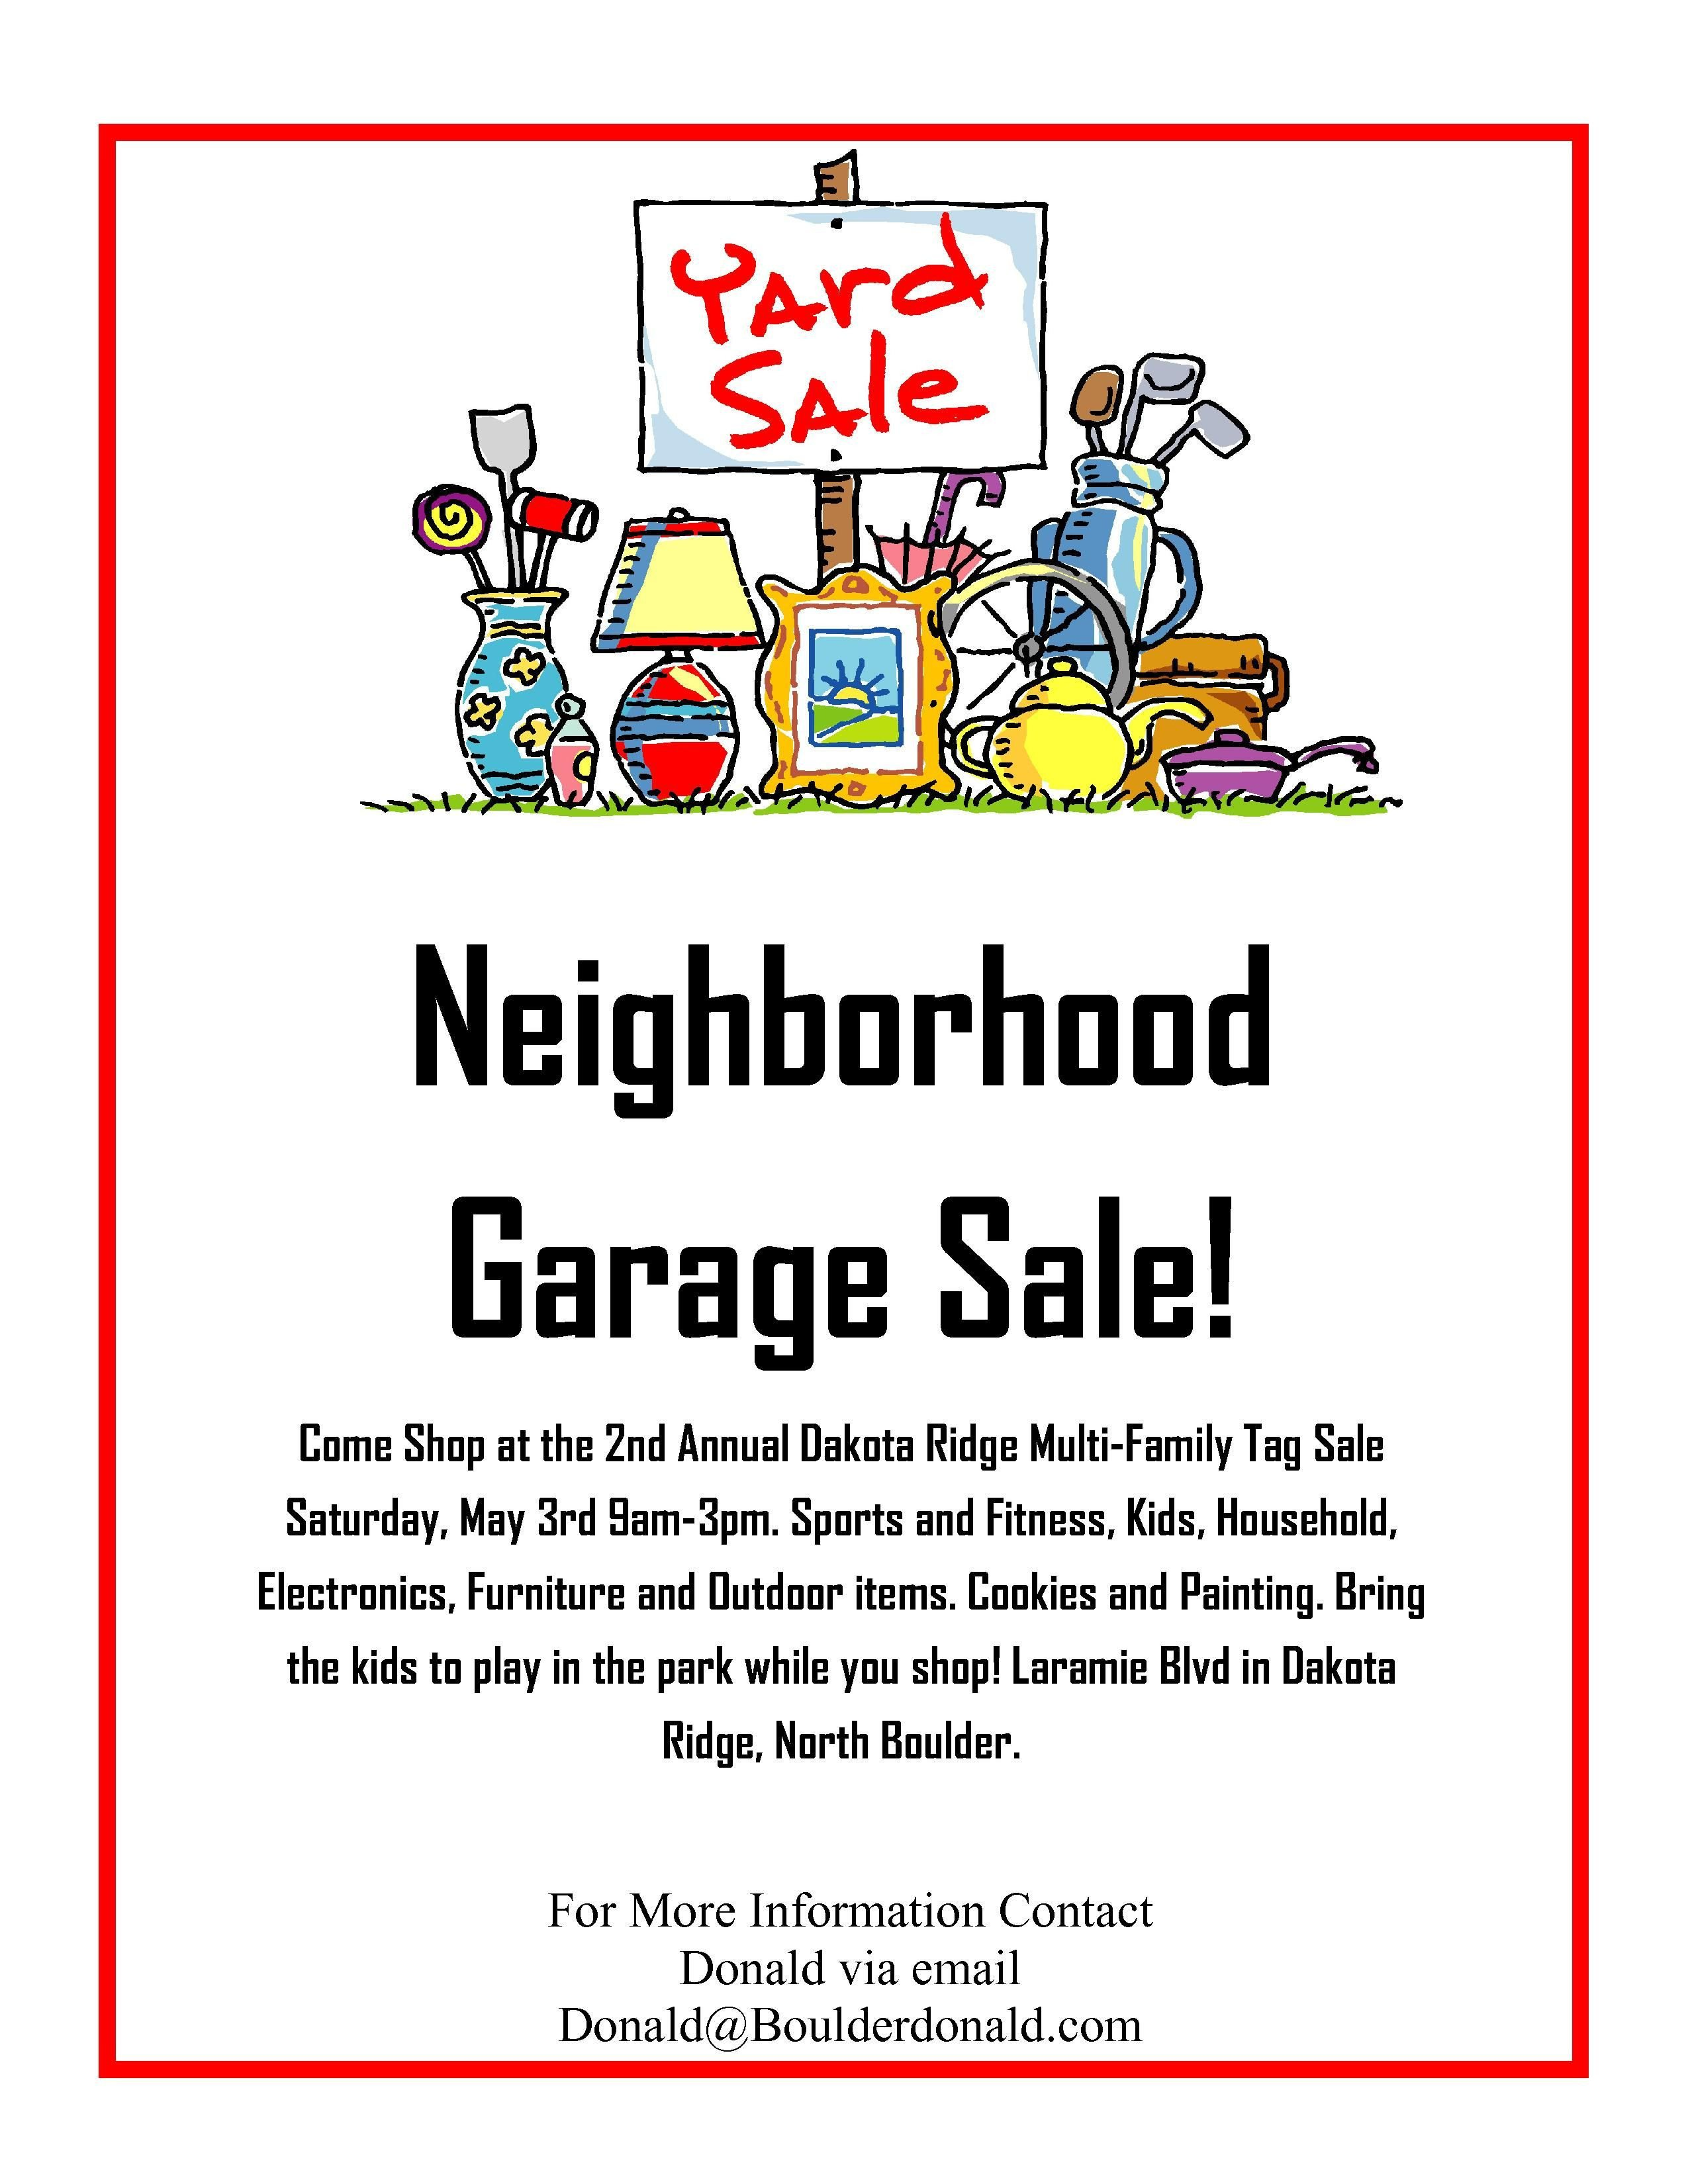 Garage Sale Sign Template Dakota Ridge Munity Garage Sale May 3rd 2014